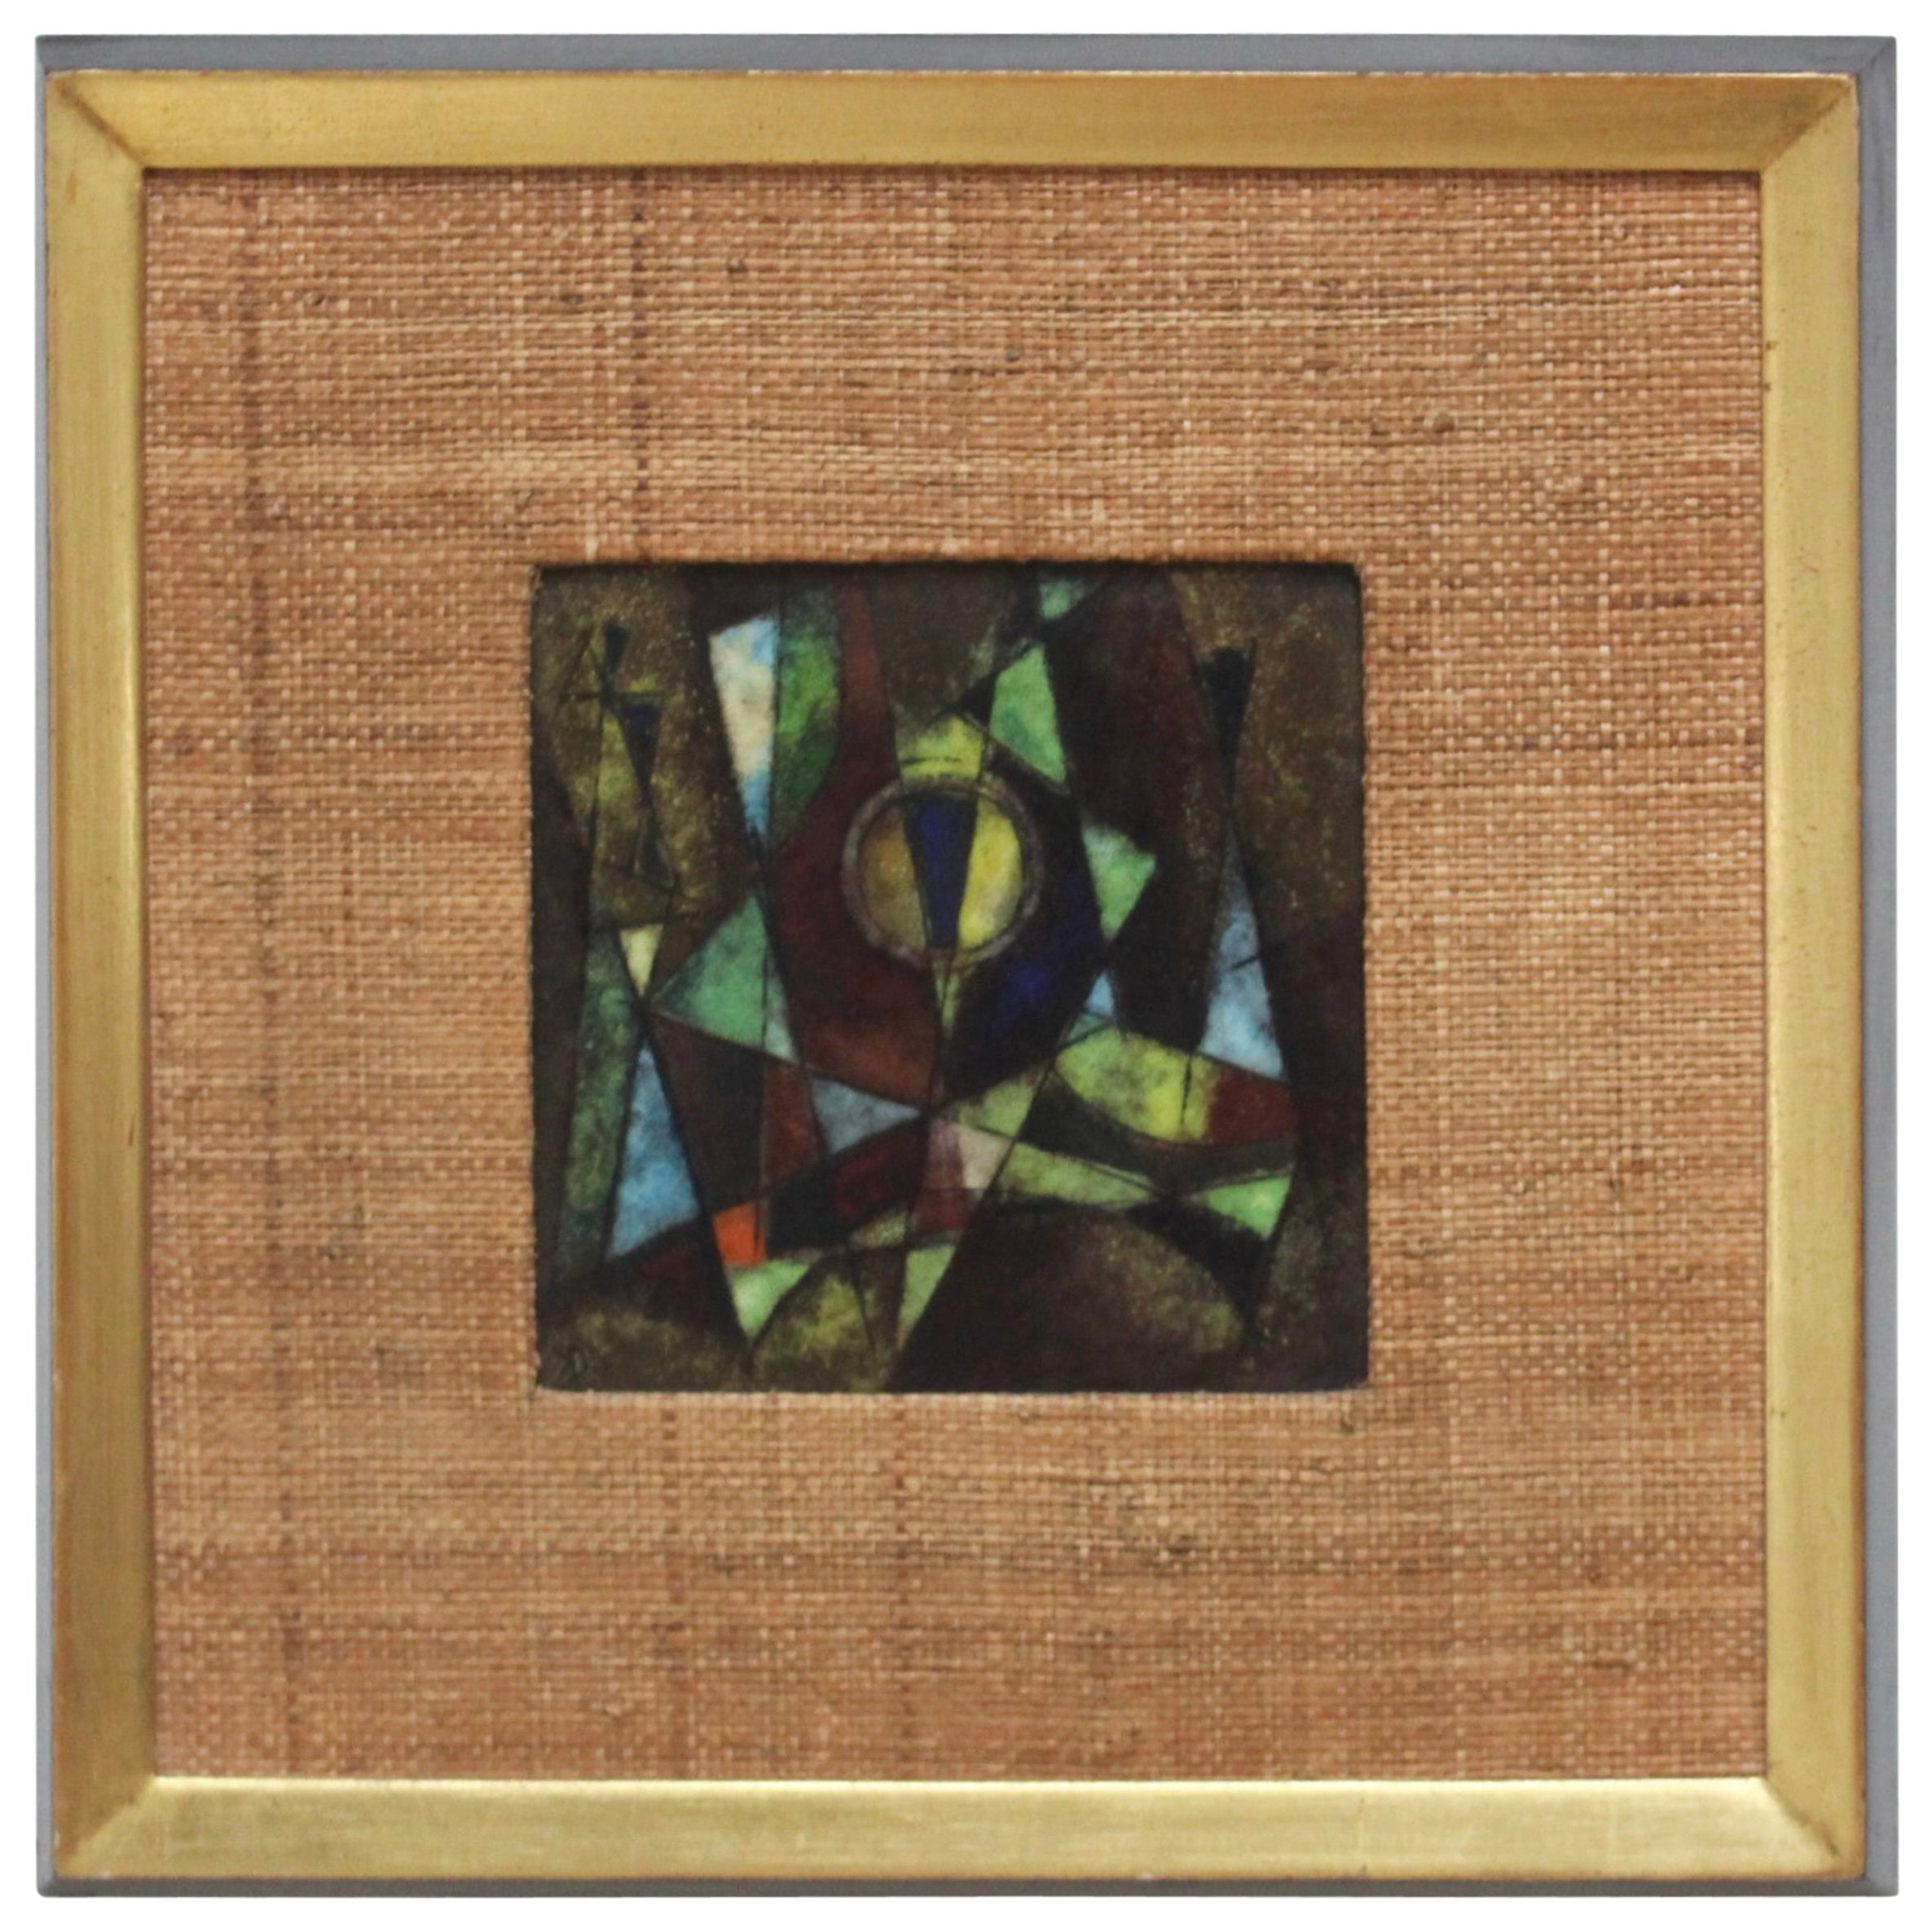 Karl Drerup 1950s Modern Enamel on Copper Frame Artwork